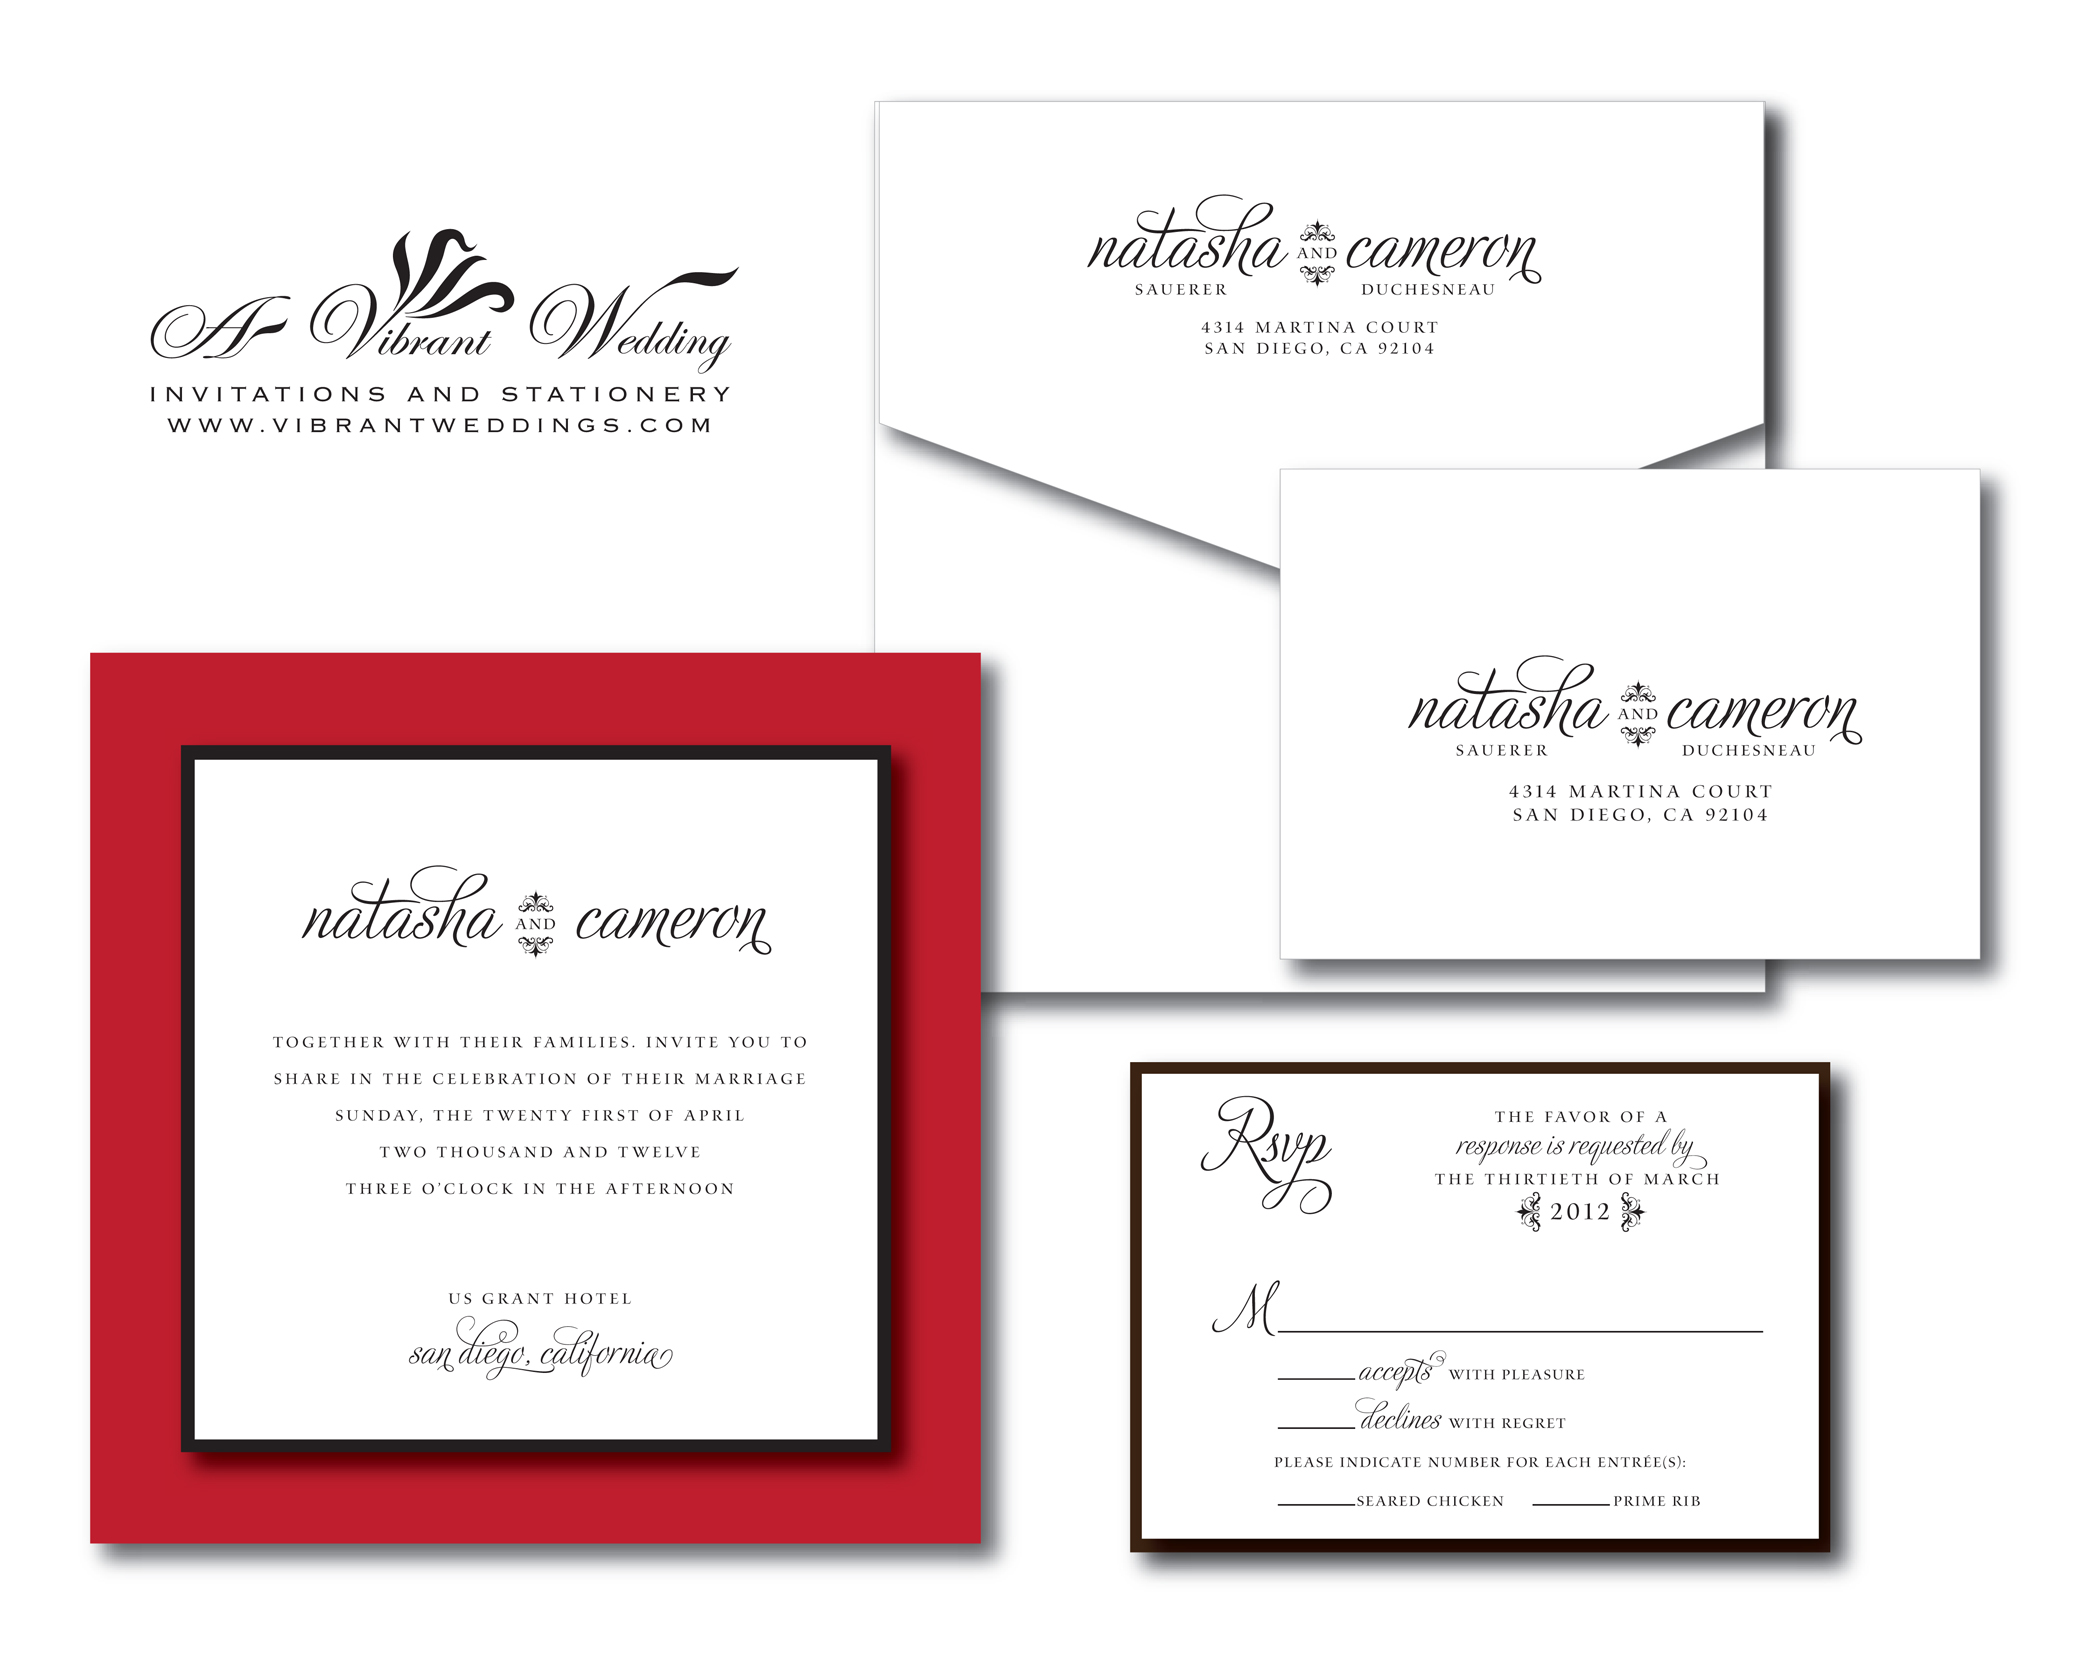 red and white wedding invitation – A Vibrant Wedding